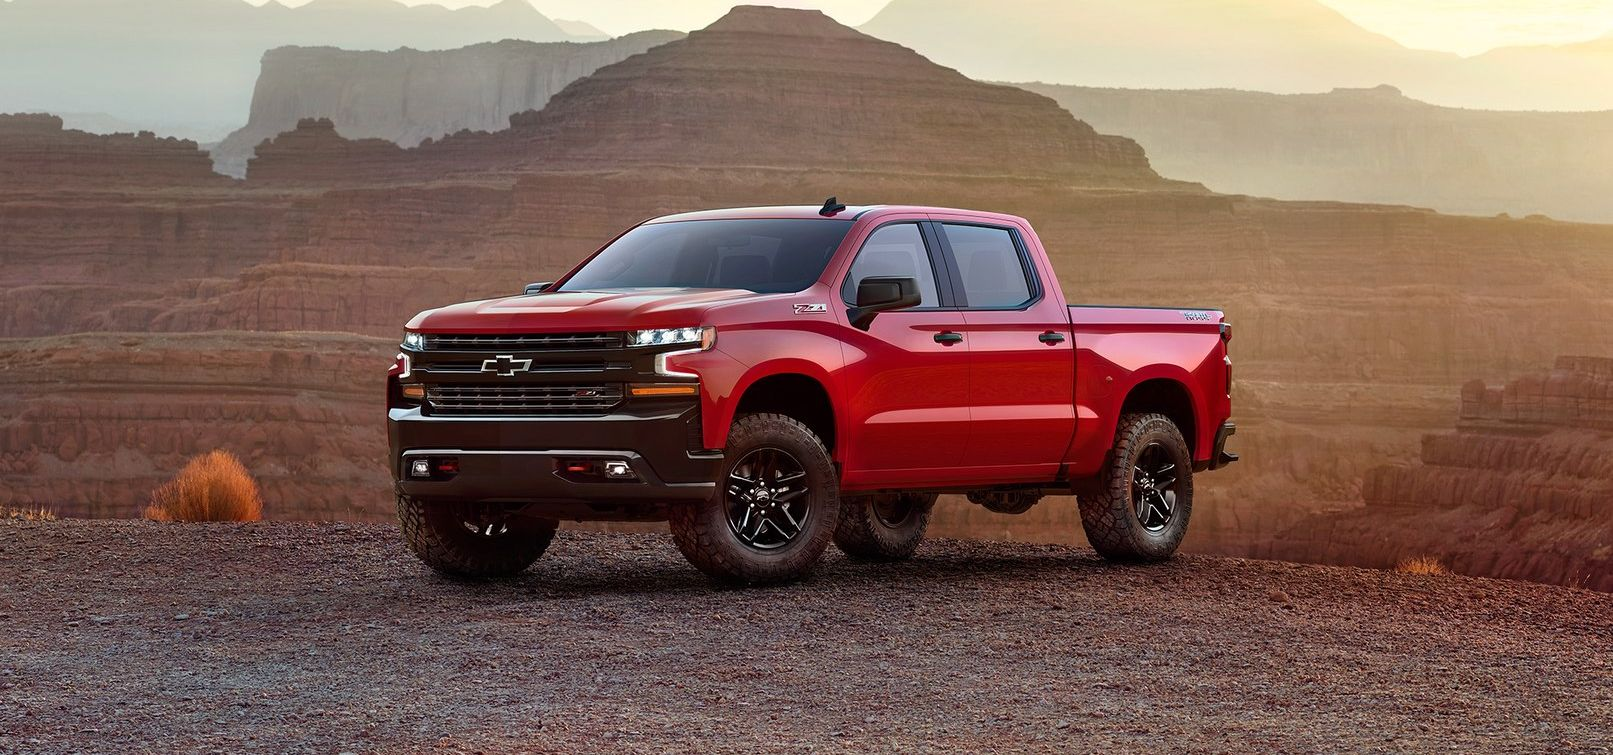 2019 Chevrolet Silverado 1500 vs 2019 Ford F-150 near San Diego, CA